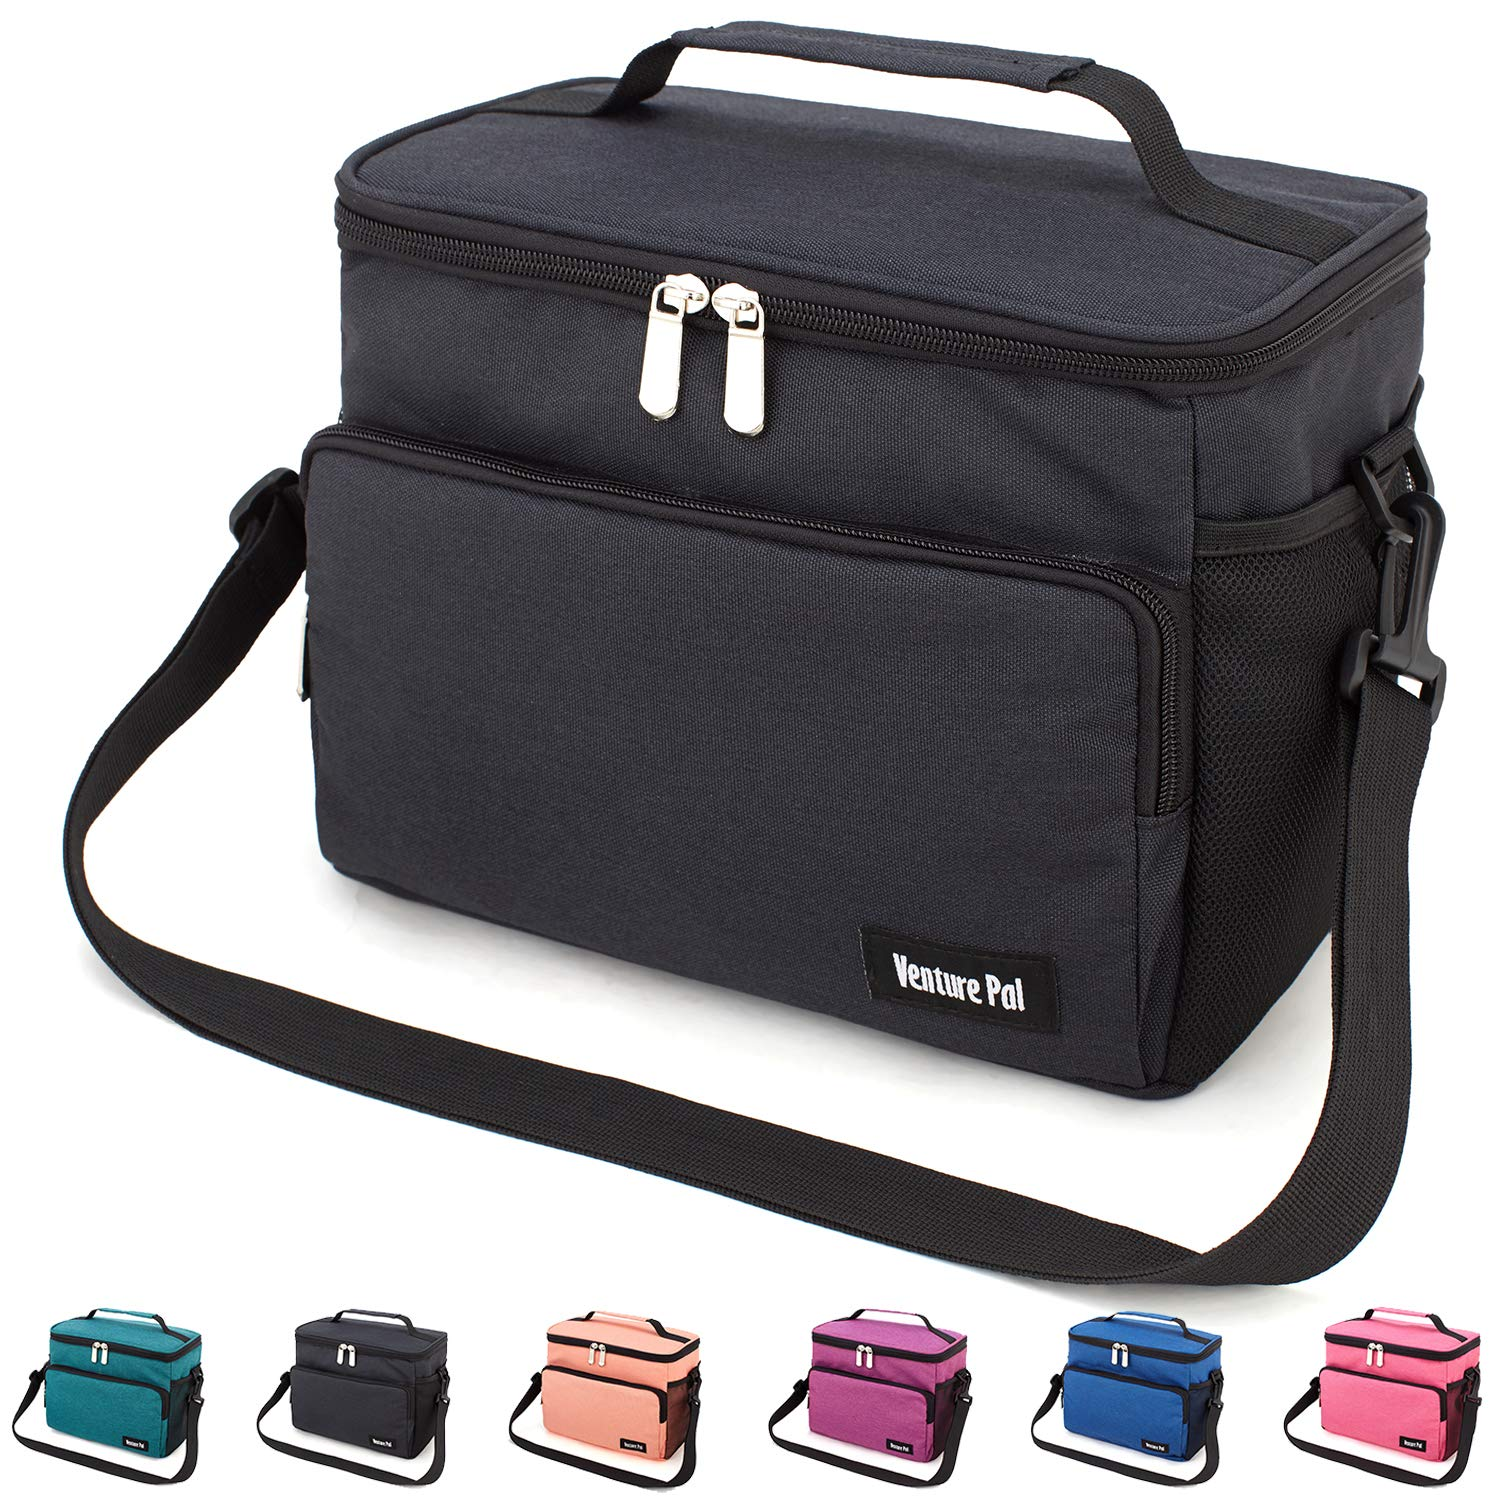 Leakproof Reusable Insulated Cooler Lunch Bag - Office Work Picnic Hiking Beach Lunch Box Organizer with Adjustable Shoulder Strap for Women,Men-Black by Venture Pal